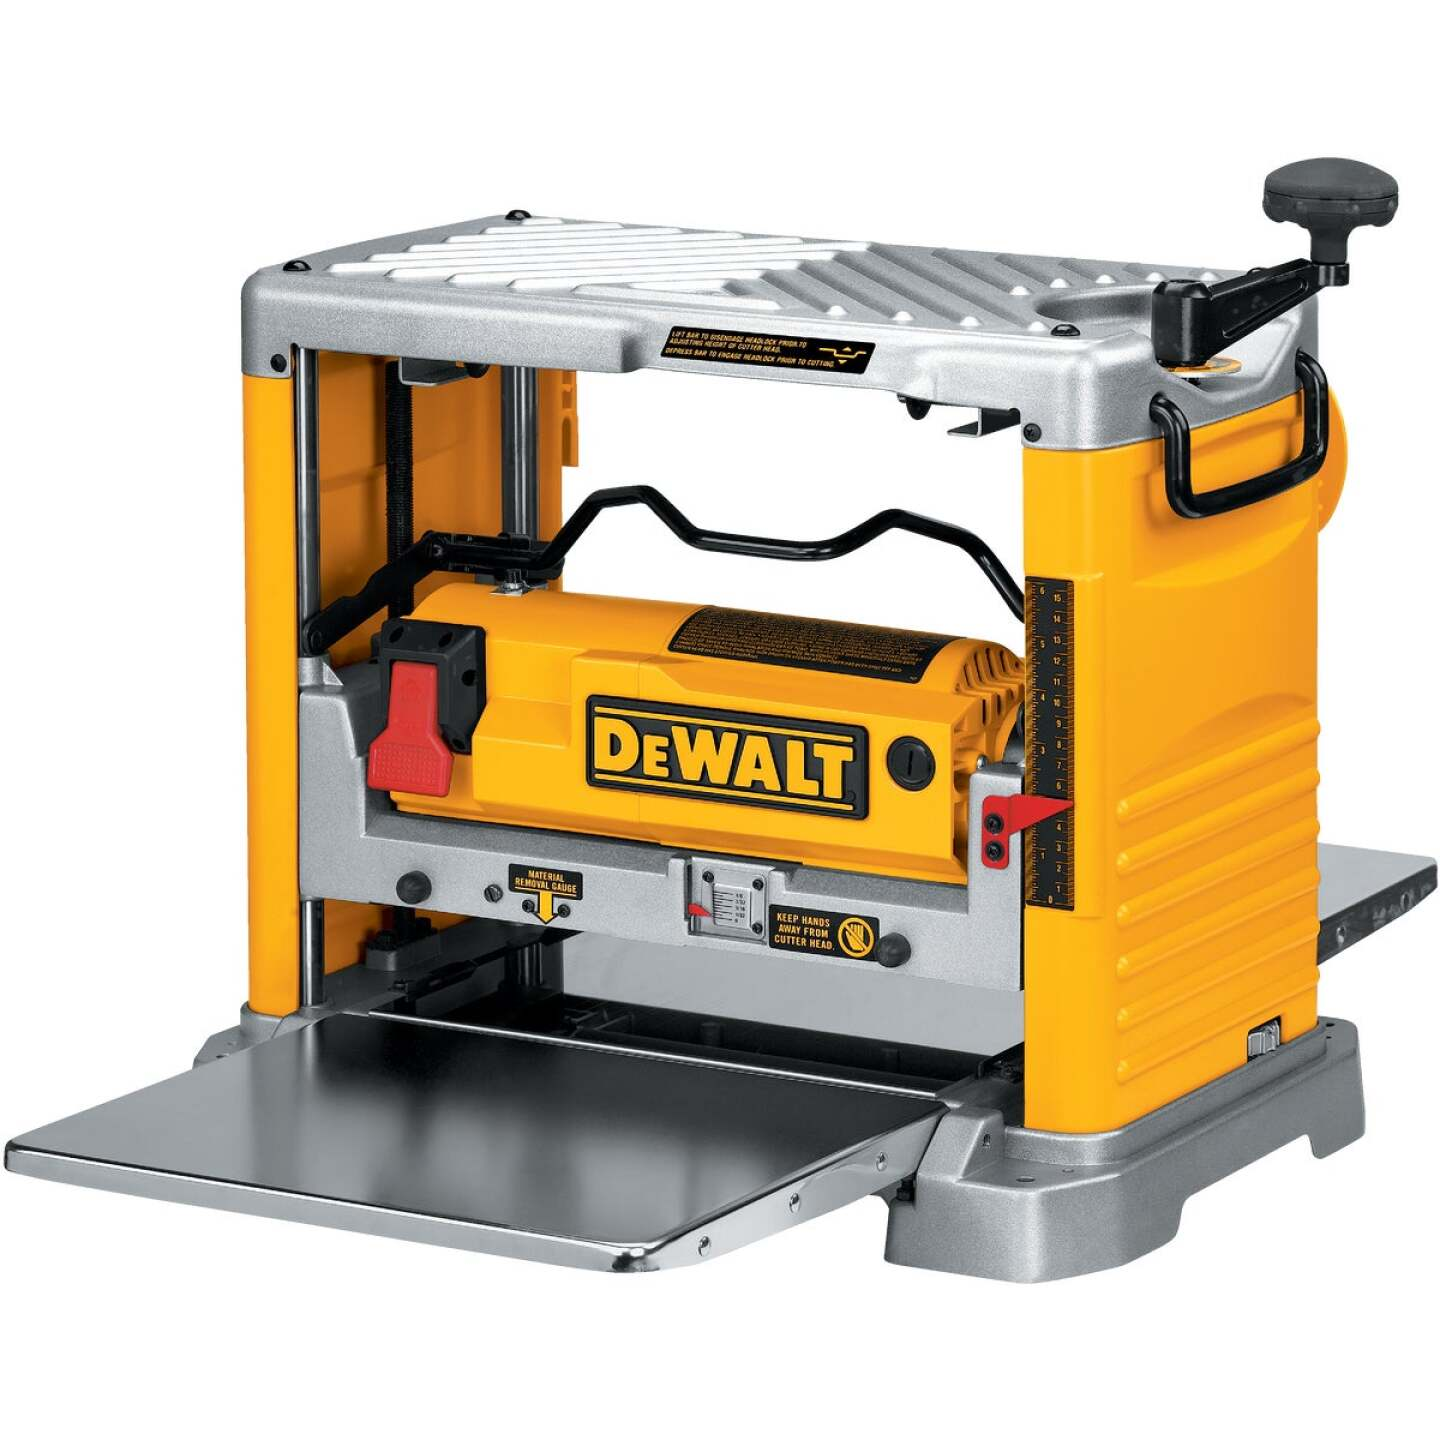 DeWalt 12-1/2 In. Portable Planer Image 5